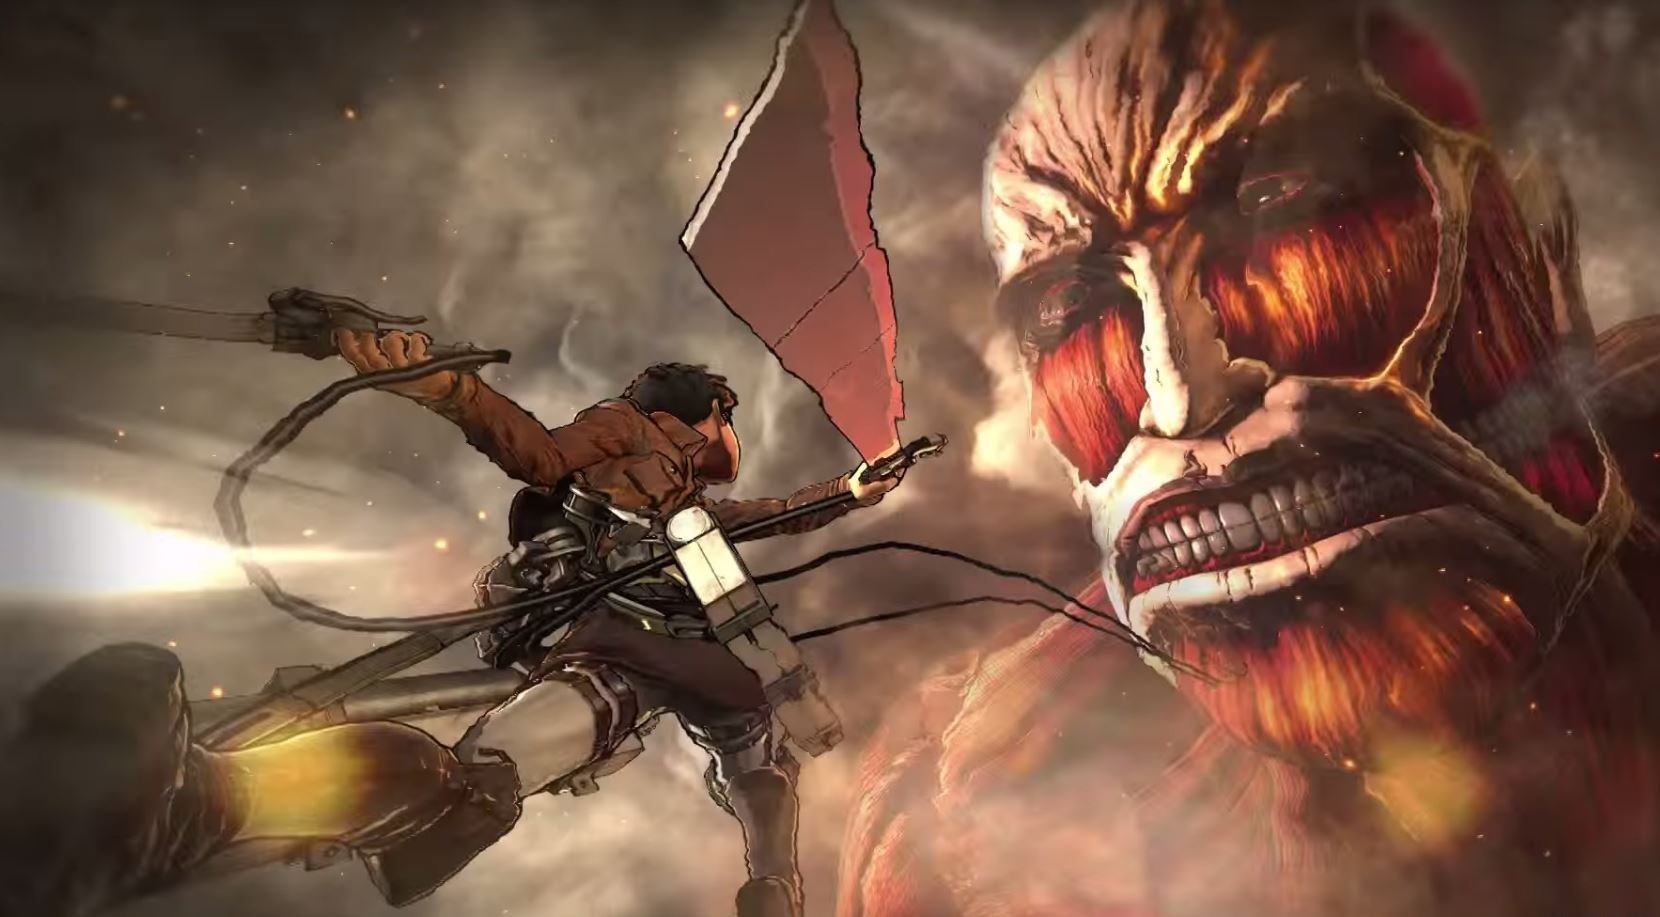 Attack on Titan Season 4 Episode 2 Release Date and Watch Online